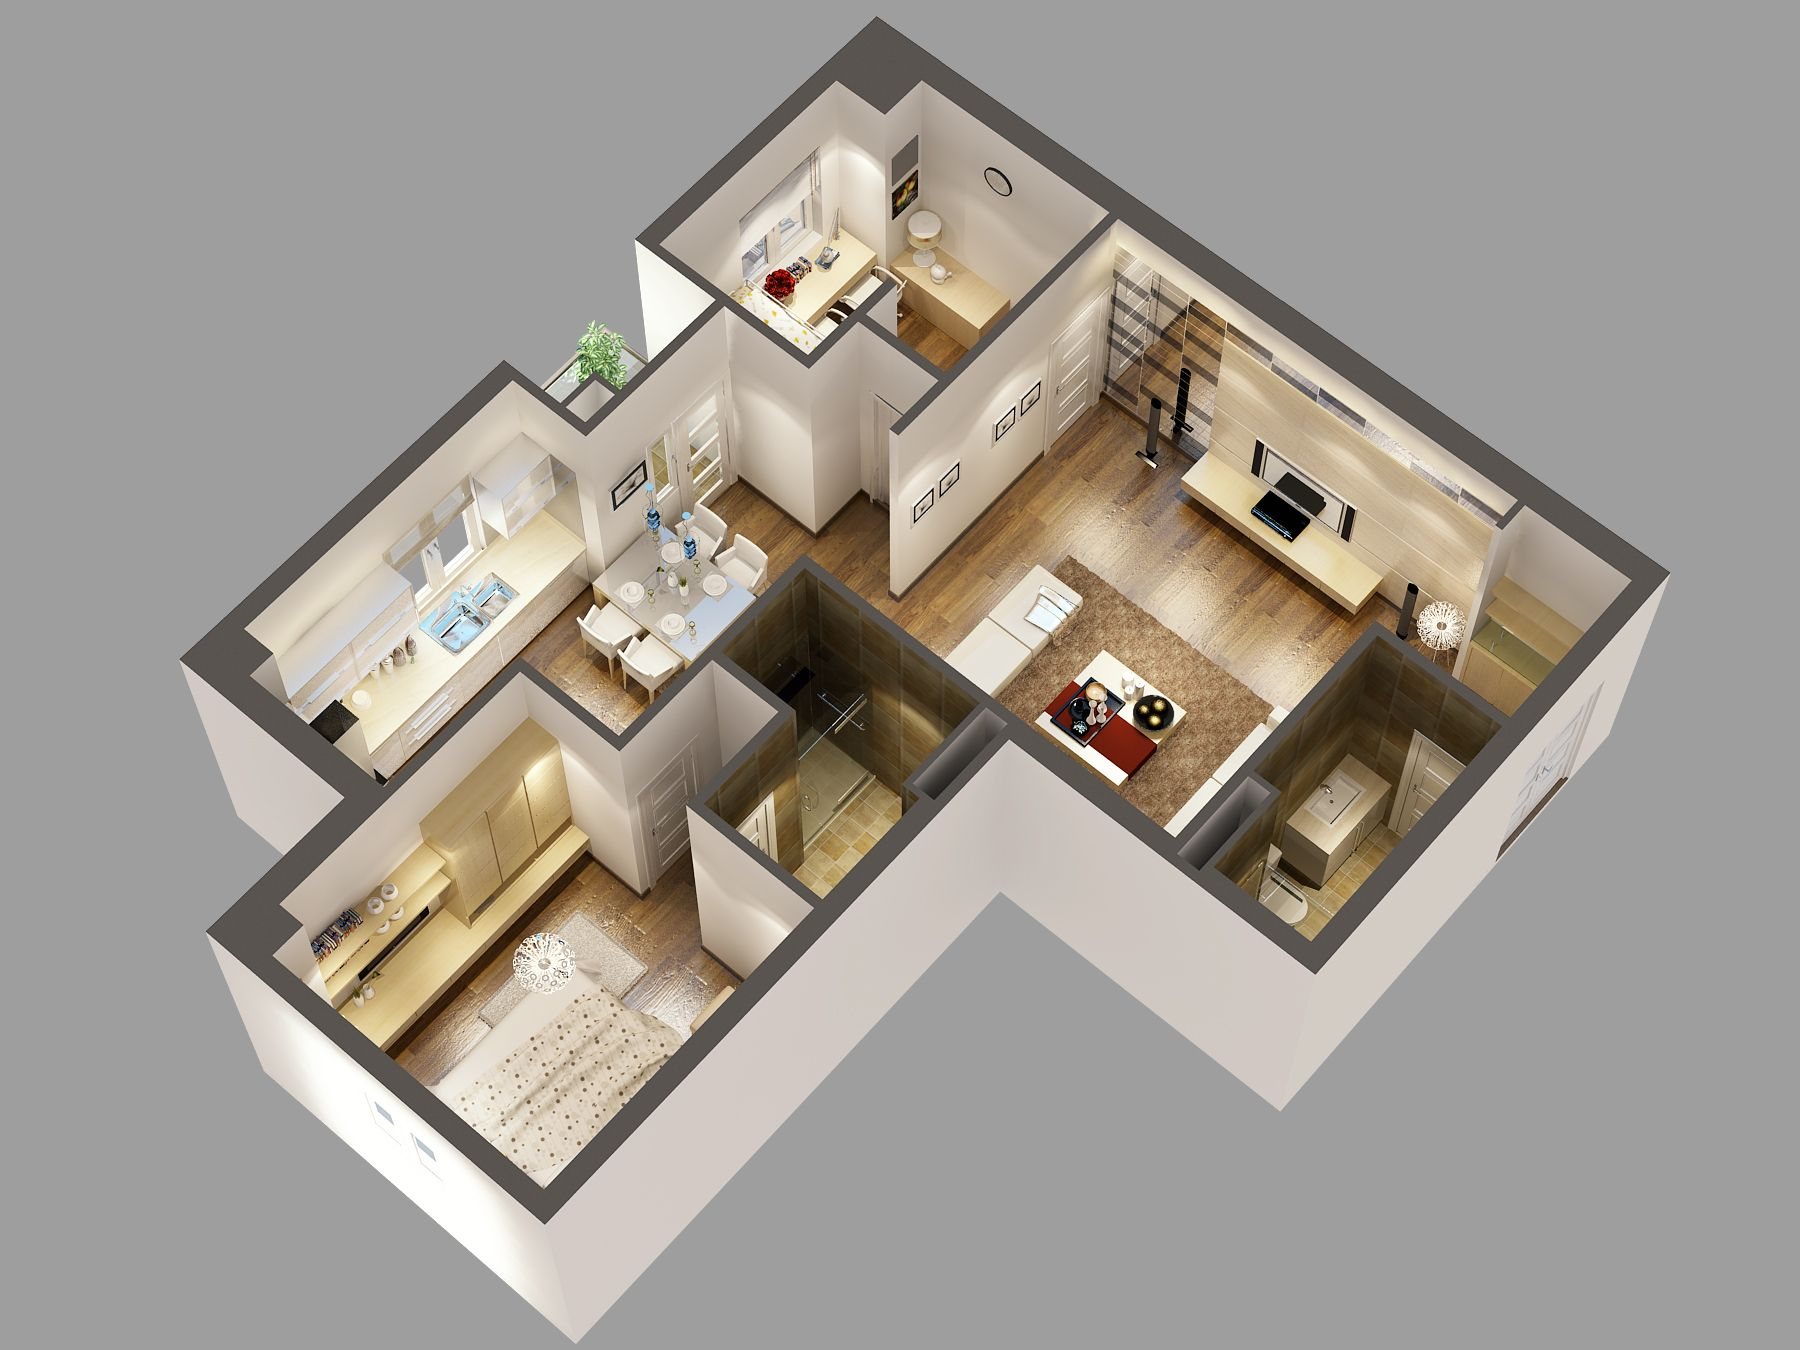 3d Floor Plan Software Free With Awesome Modern Interior Design With Laminate Floooring For 3d Floor Plan Software Free Download For Mac